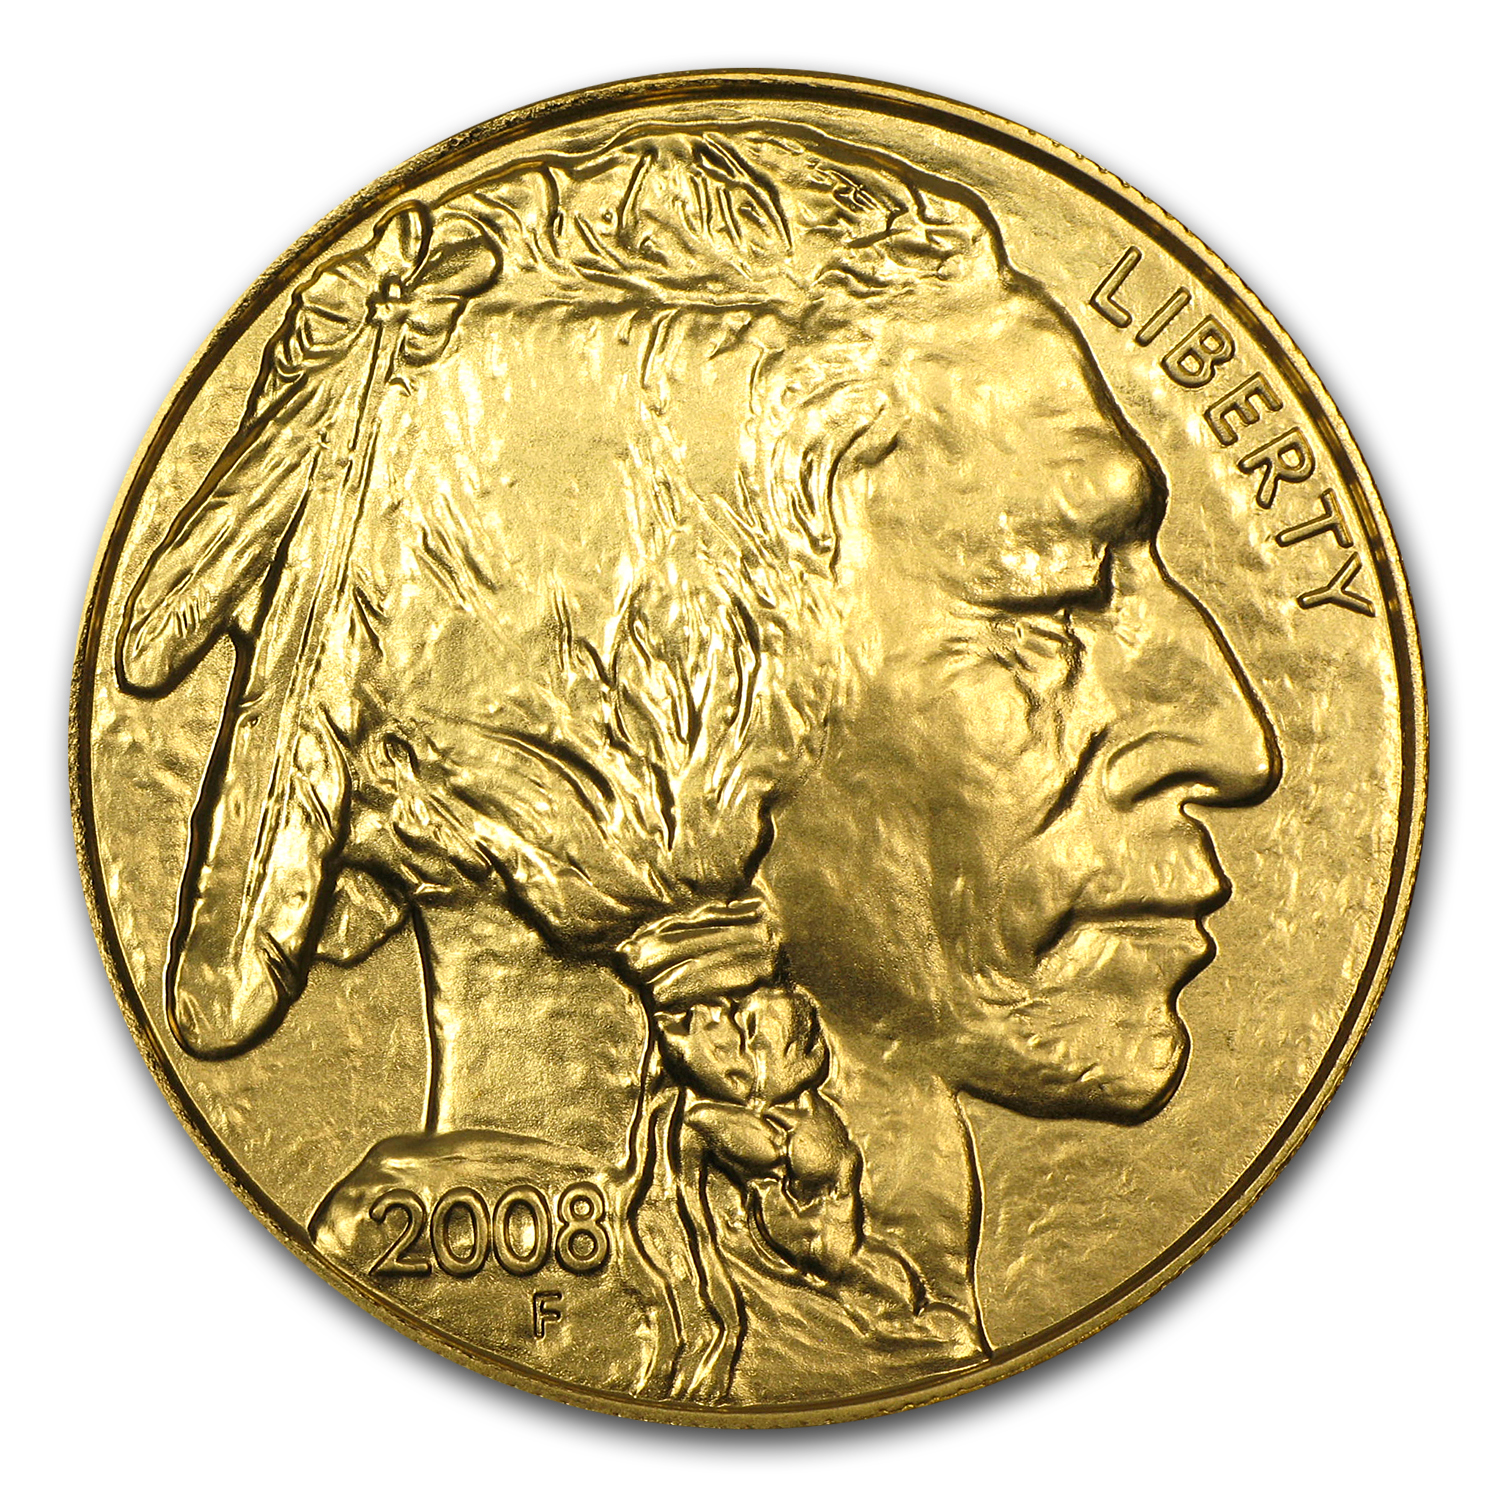 2008 1 oz Gold Buffalo - Brilliant Uncirculated